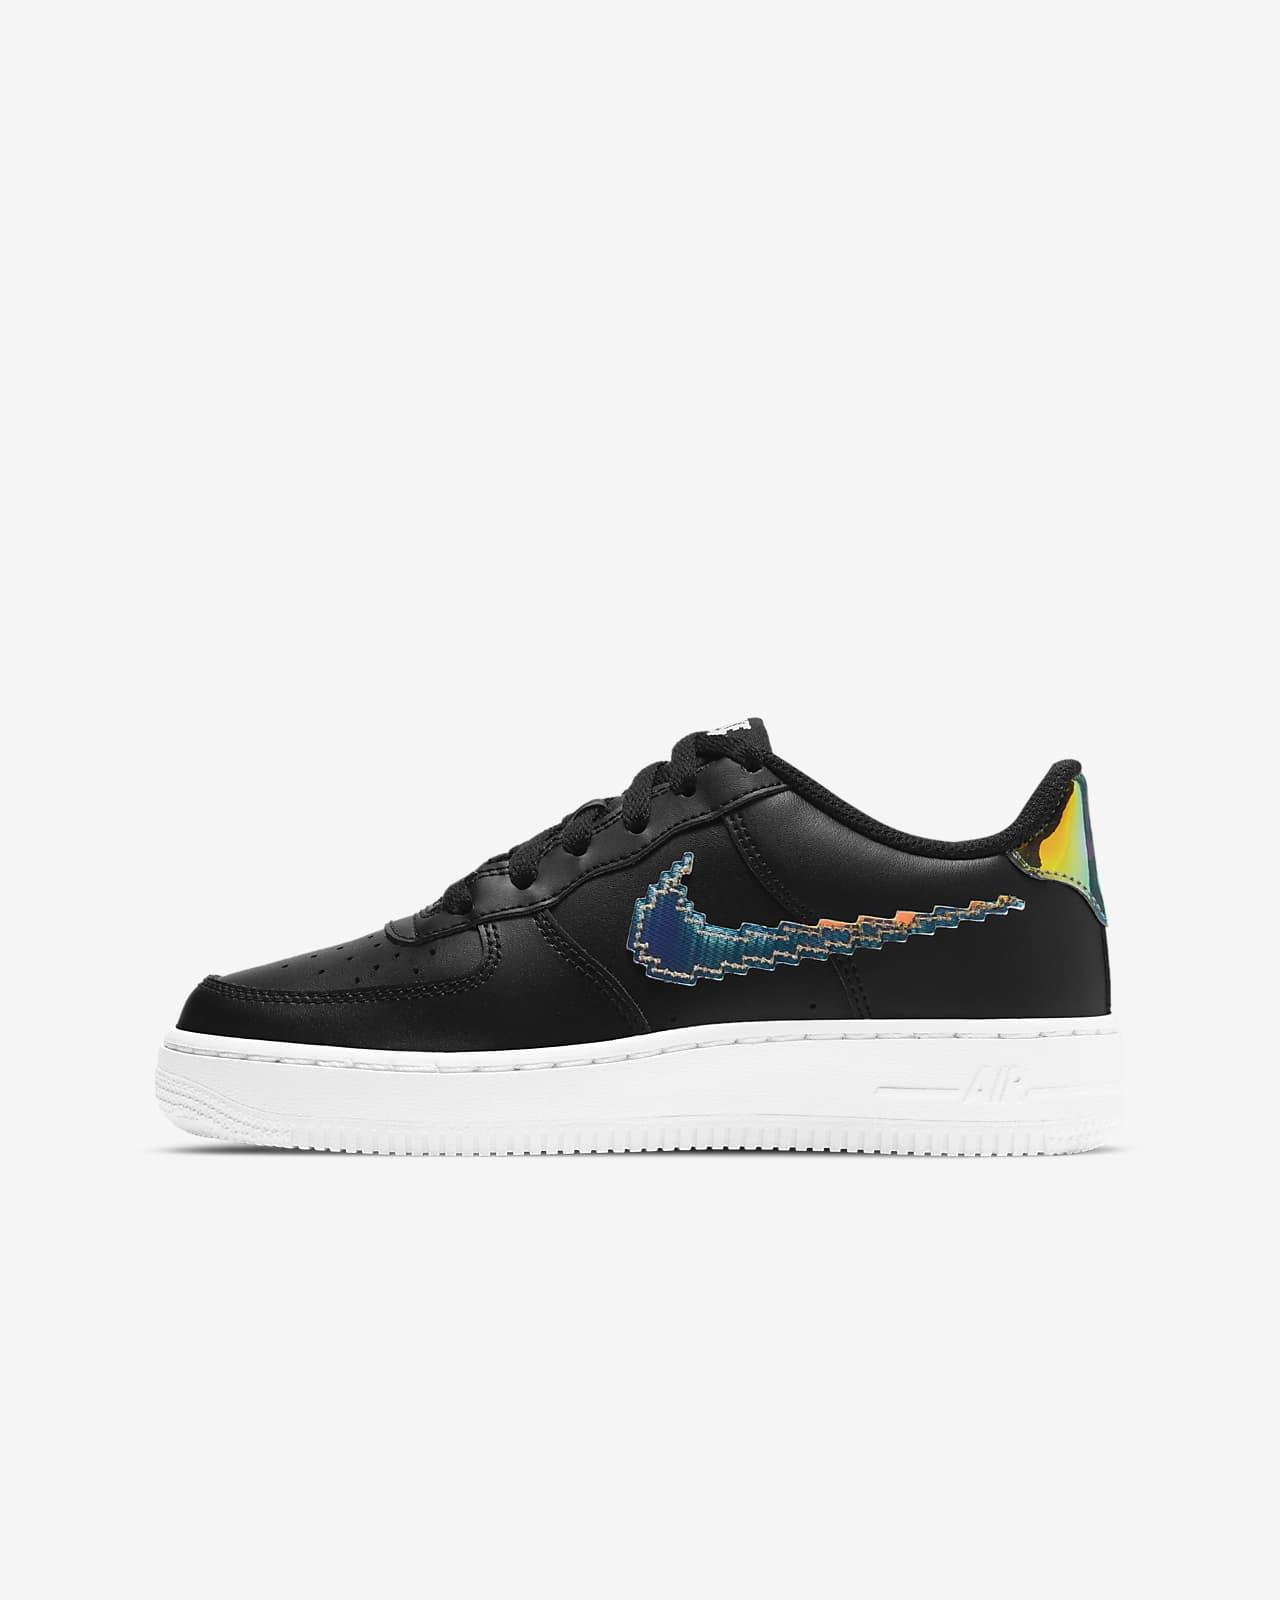 Nike Air Force 1 LV8 Big Kids' Shoe